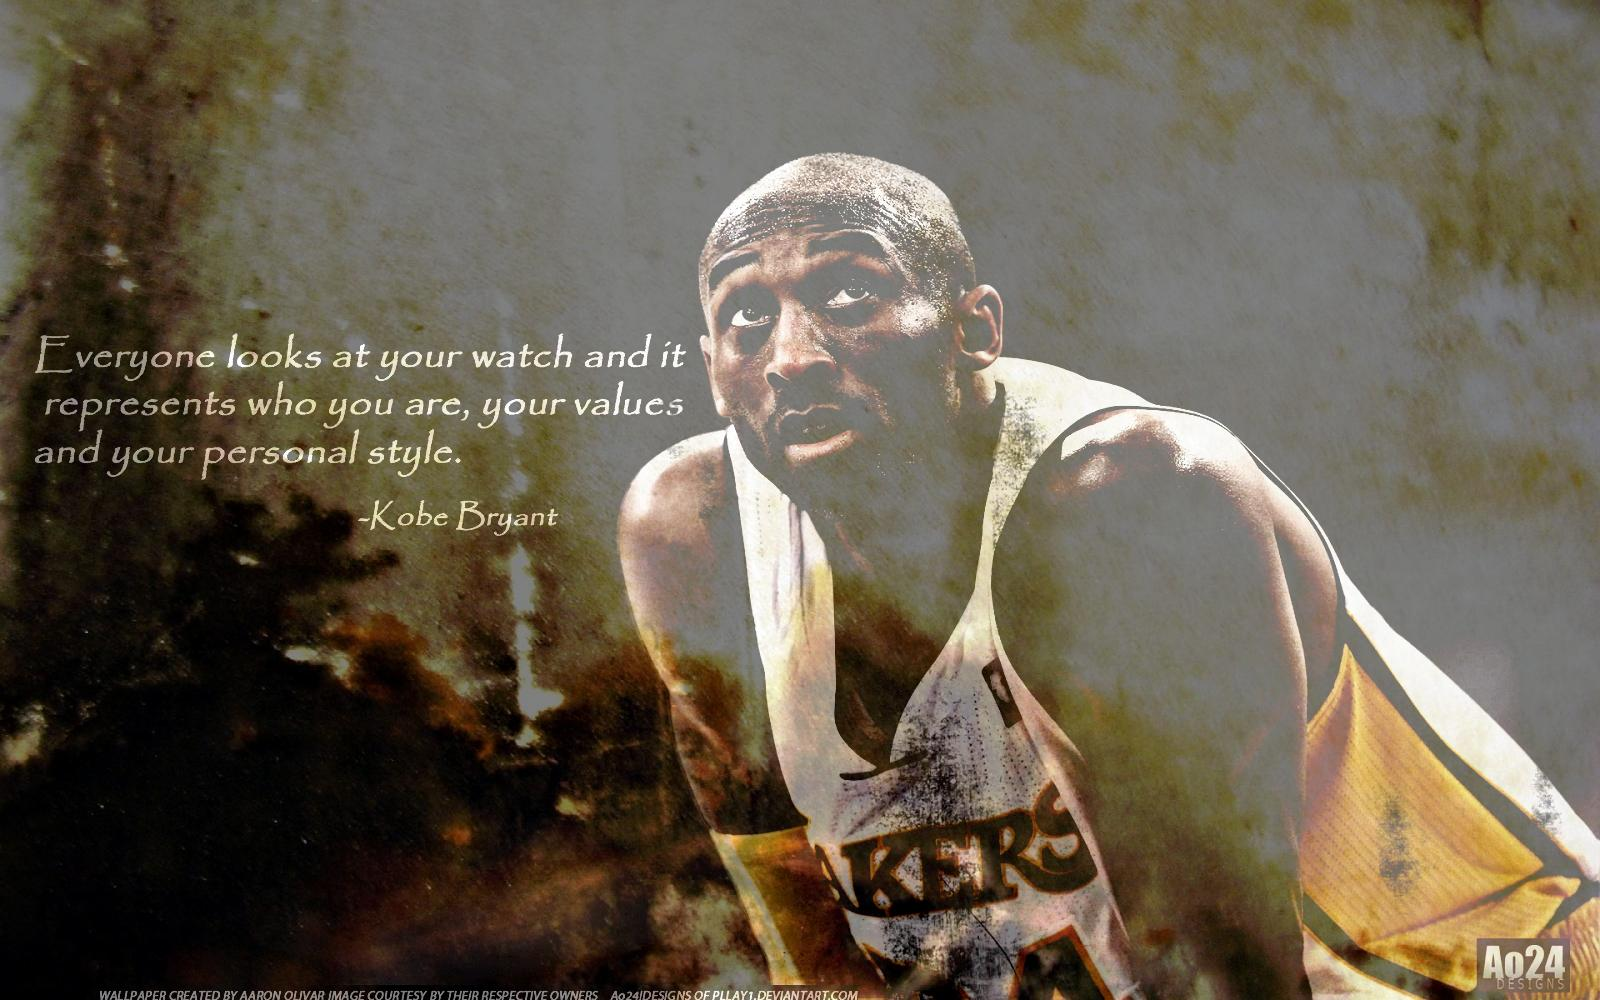 Image for Kobe Bryant Quote 2014 1600x1000